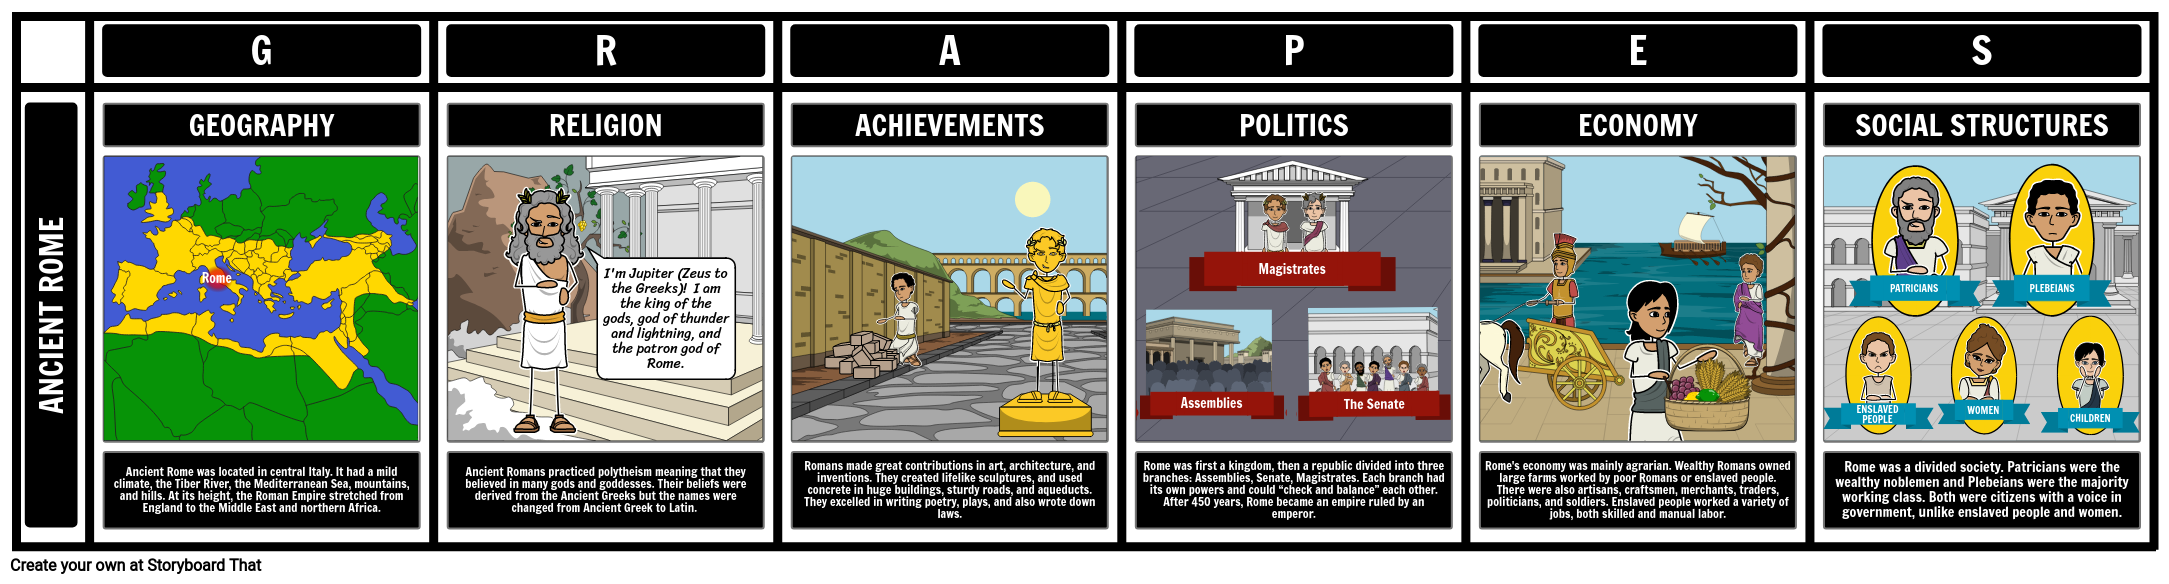 Ancient Rome G.R.A.P.E.S. Chart Storyboard by liane